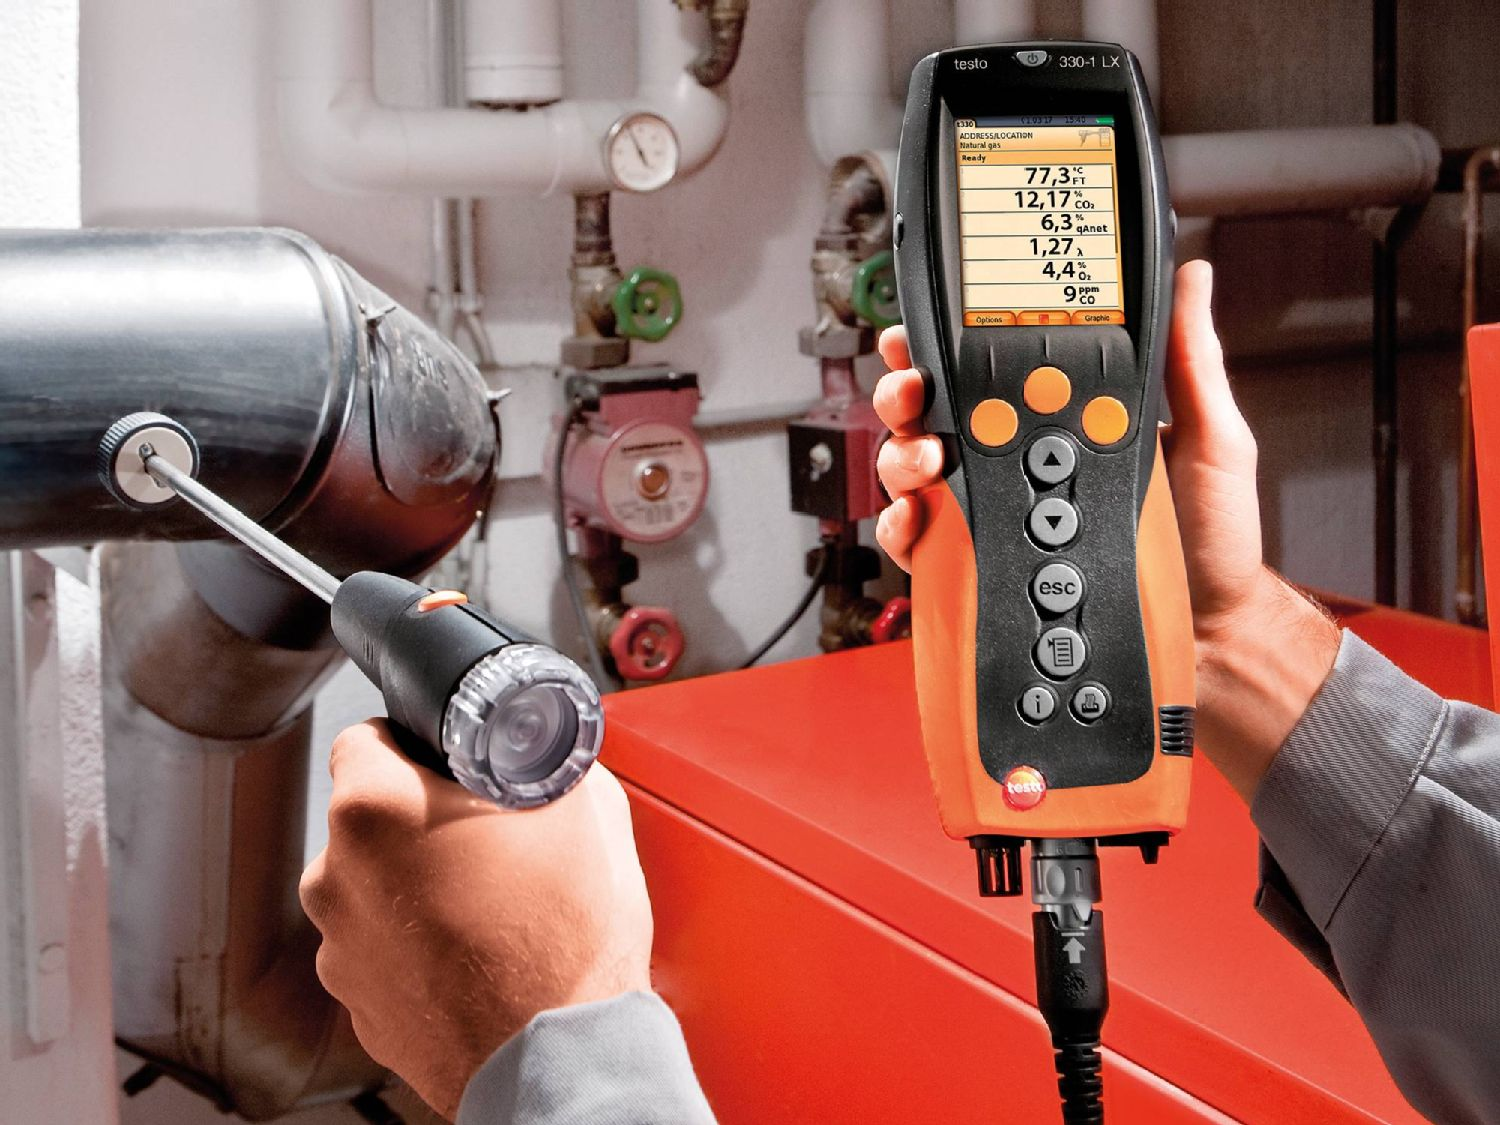 Flue gas analyzer testo 330-2 LX